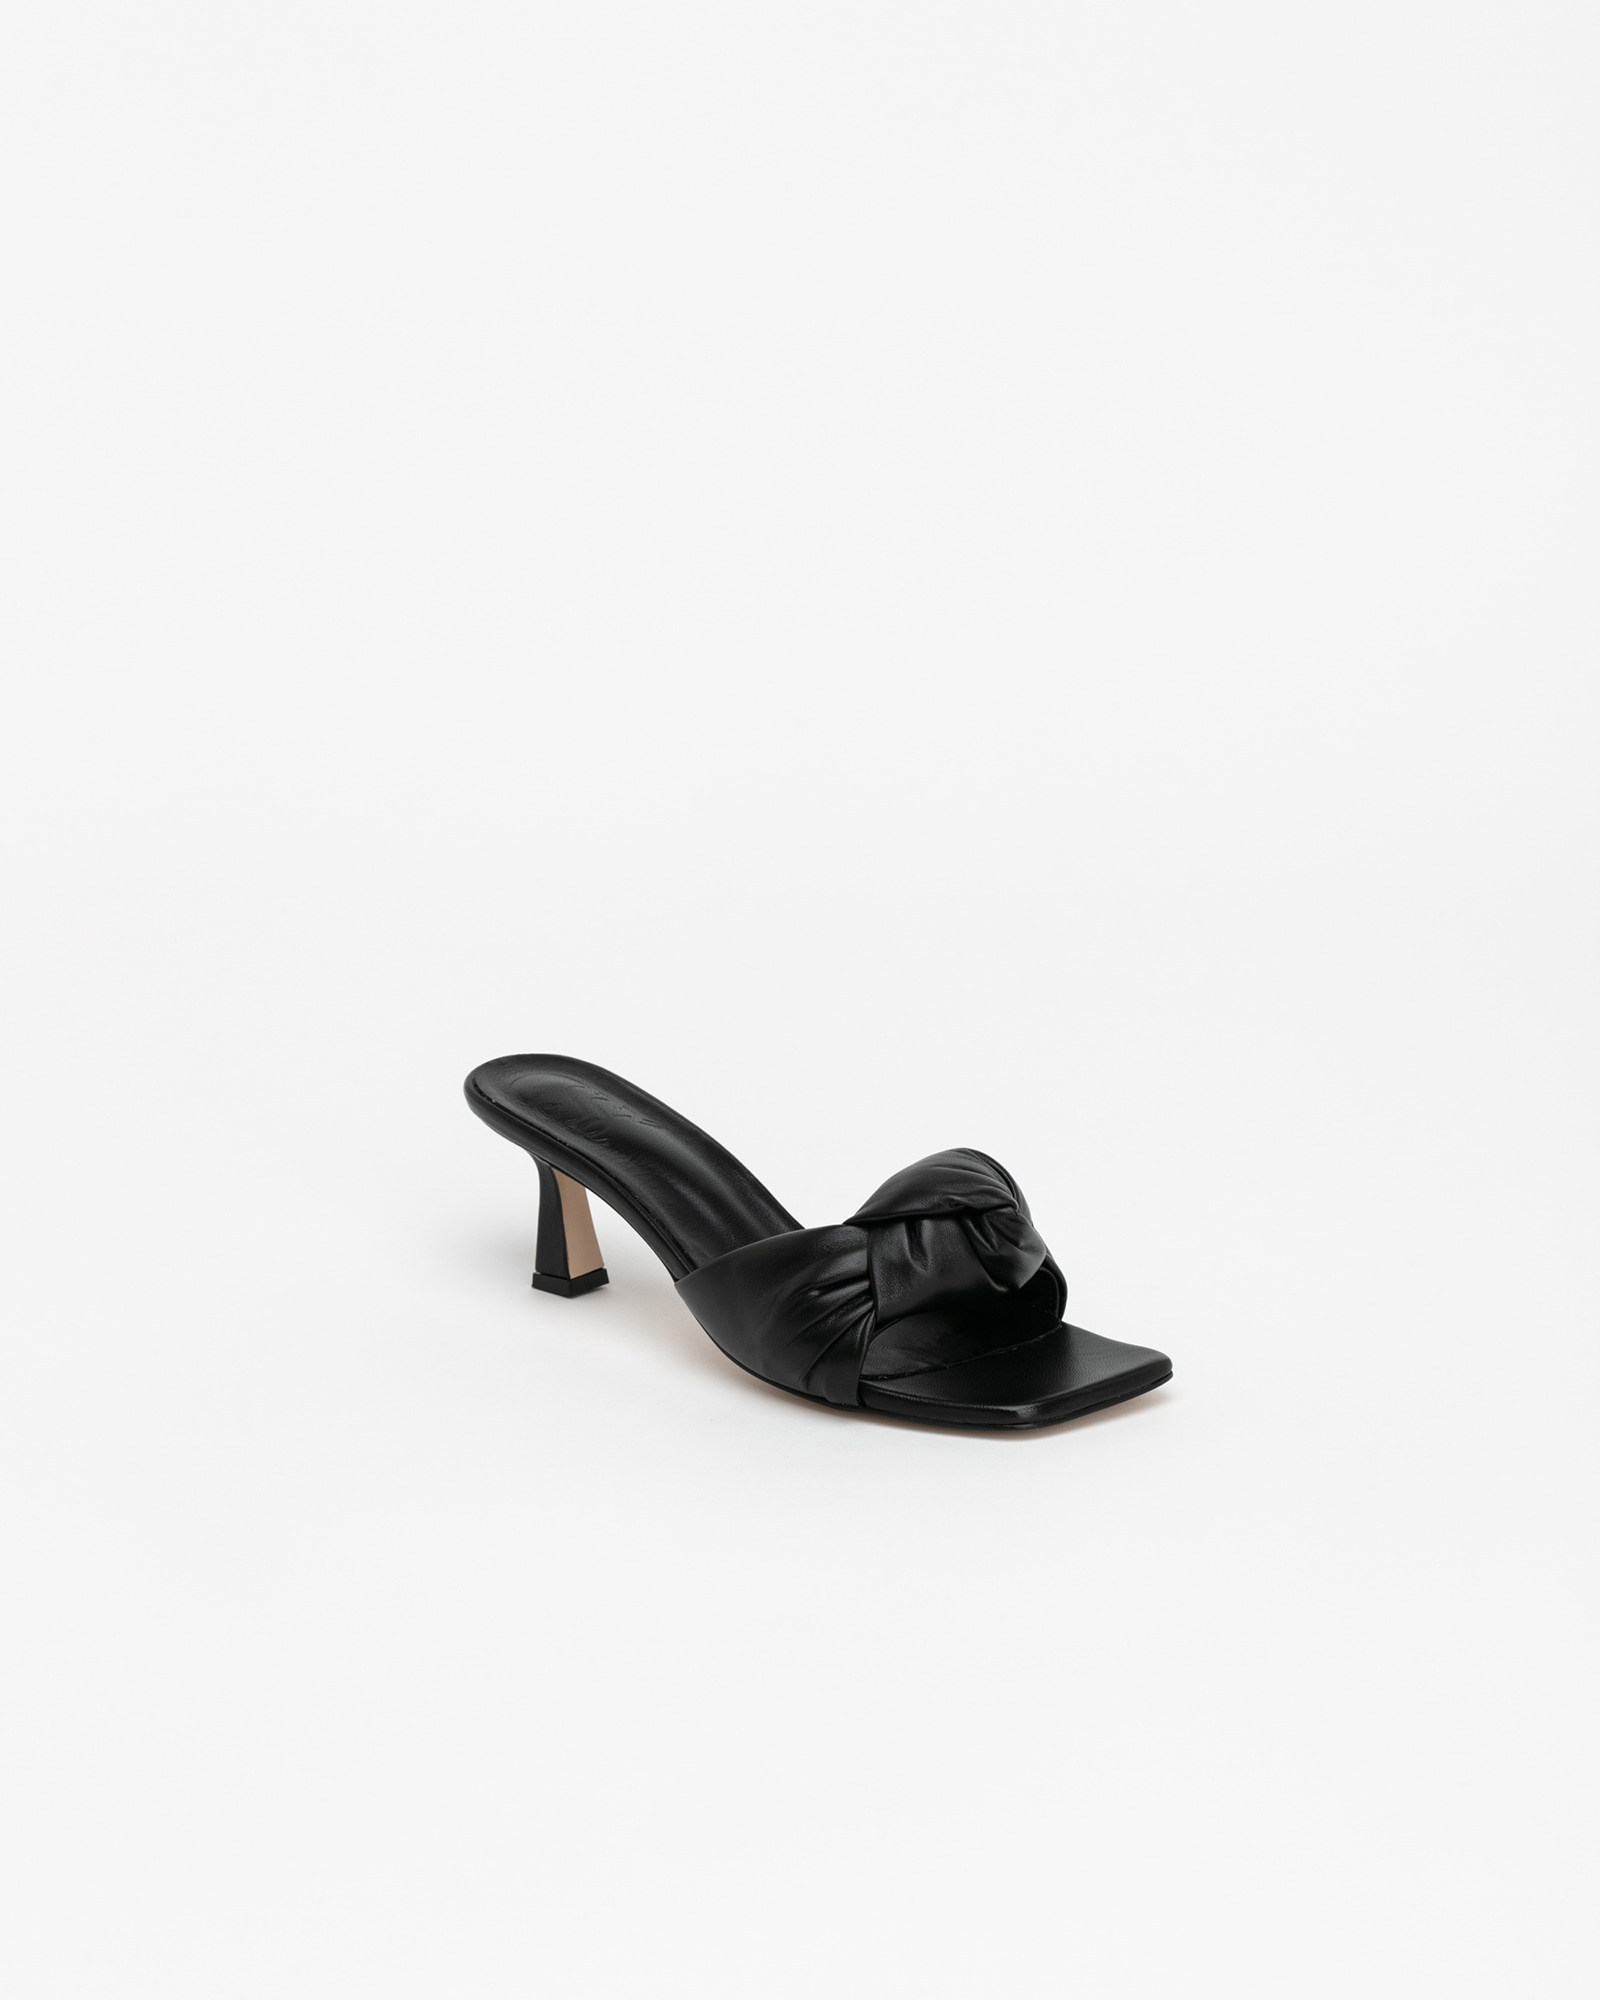 Wrappy Knotted Mules in Black